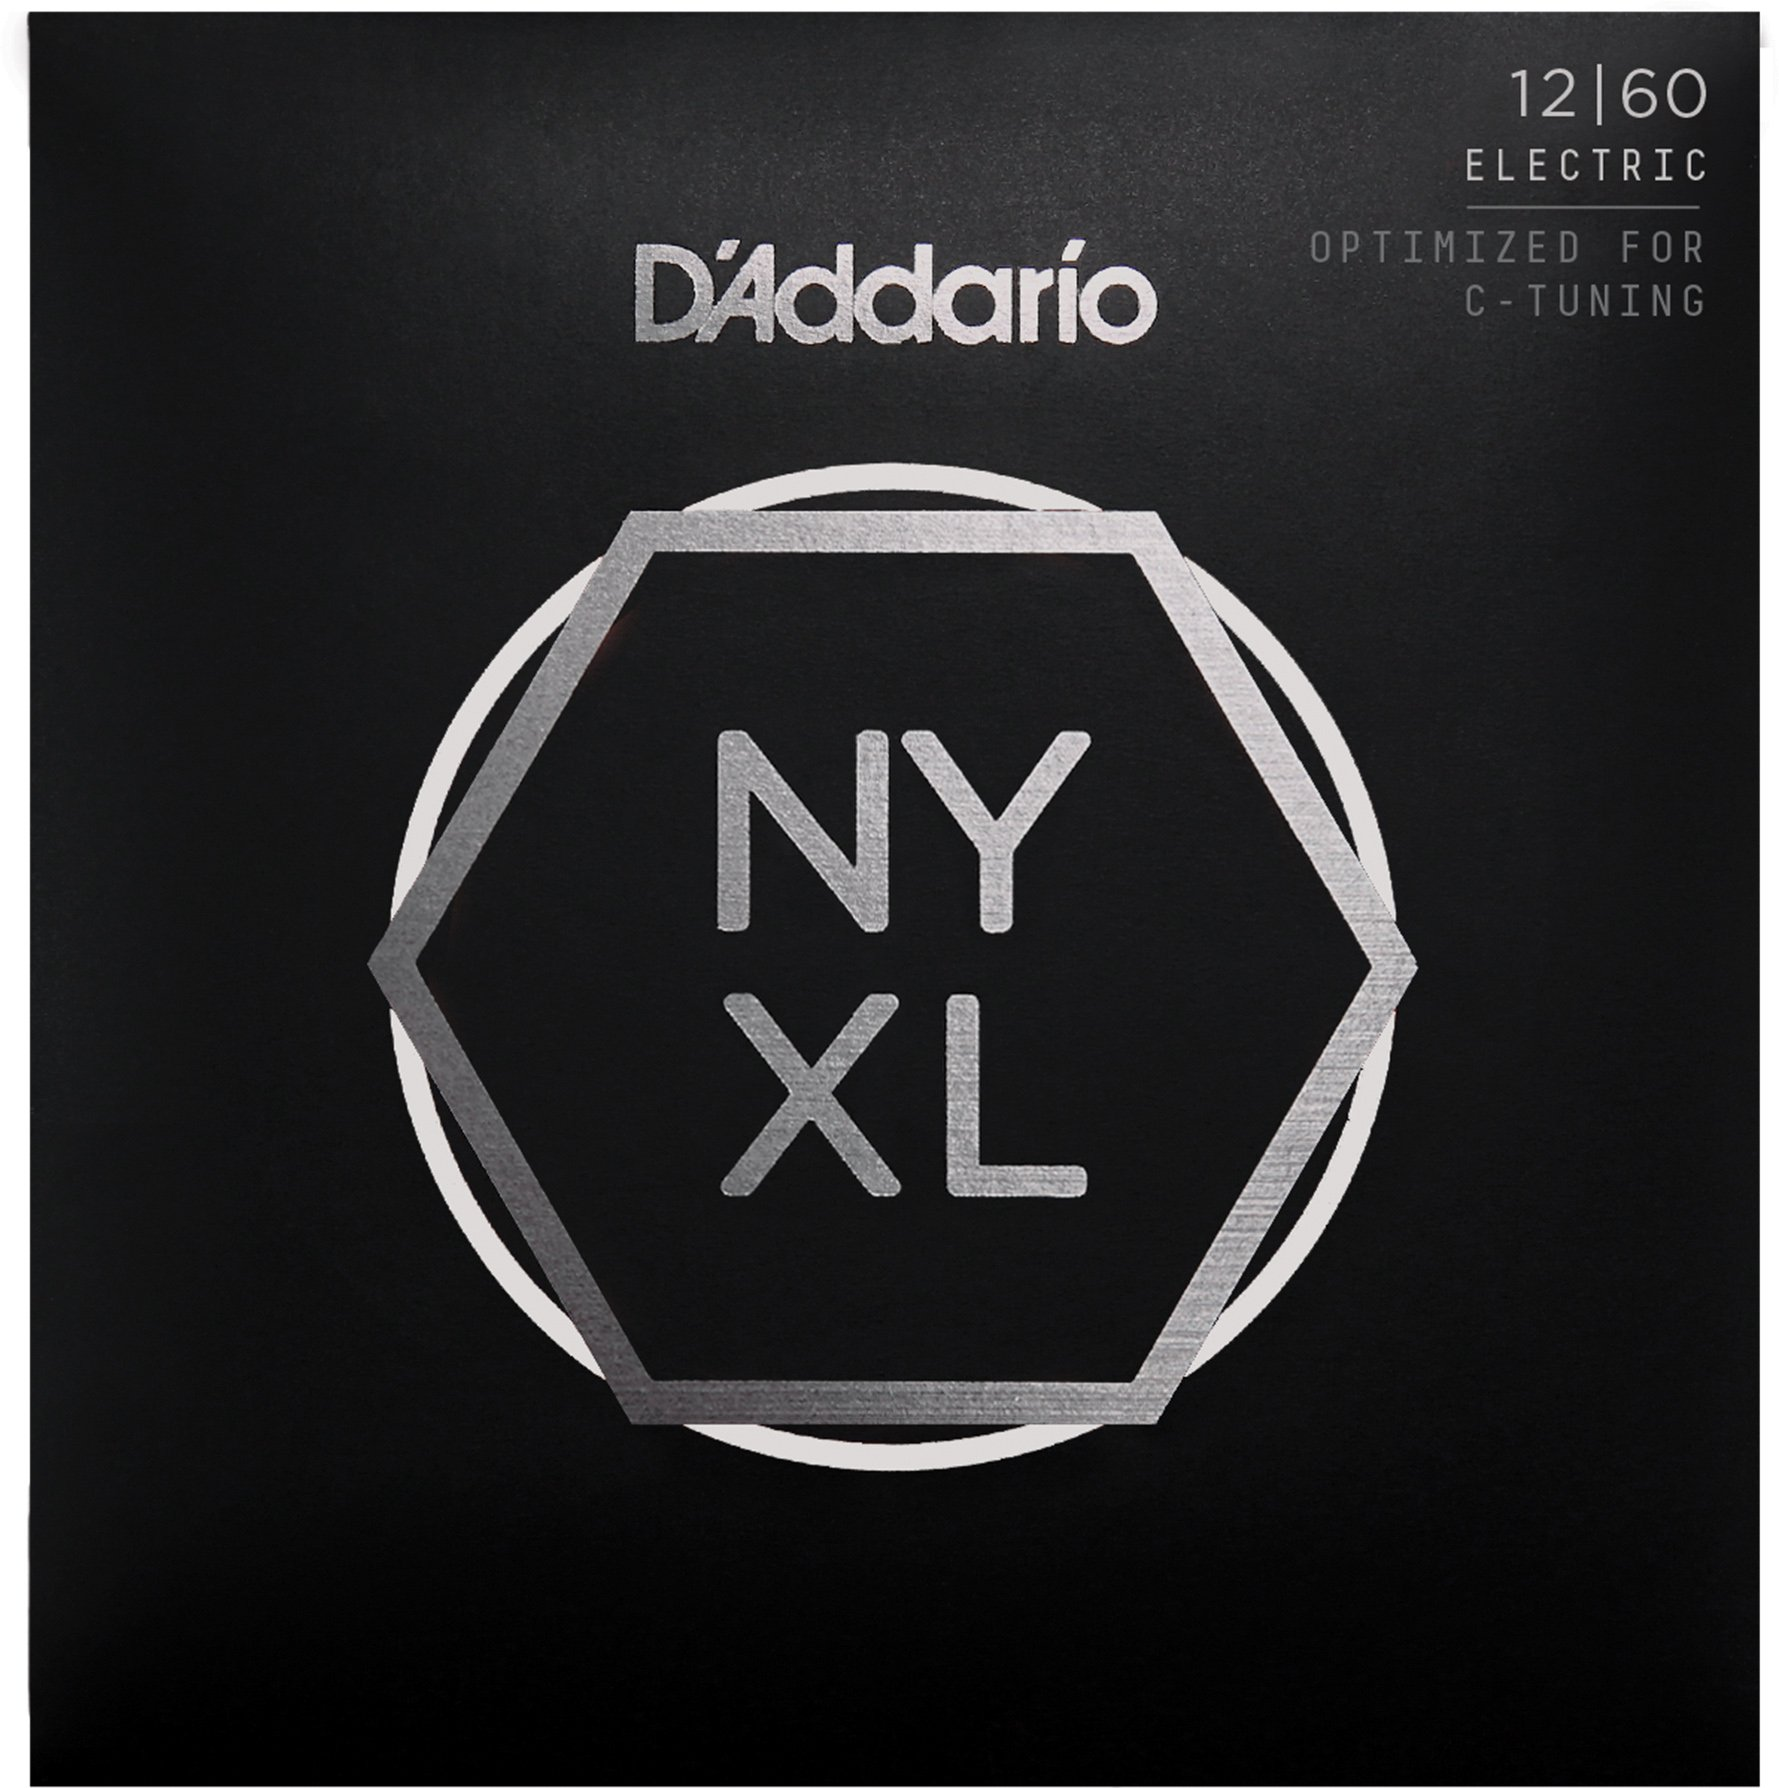 D'Addario NYXL1260 Nickel Plated Electric Guitar Strings,Extra Heavy,12-60 - High Carbon Steel Alloy for Unprecedented Strength - Ideal Combination of Playability and Electric Tone by D'Addario